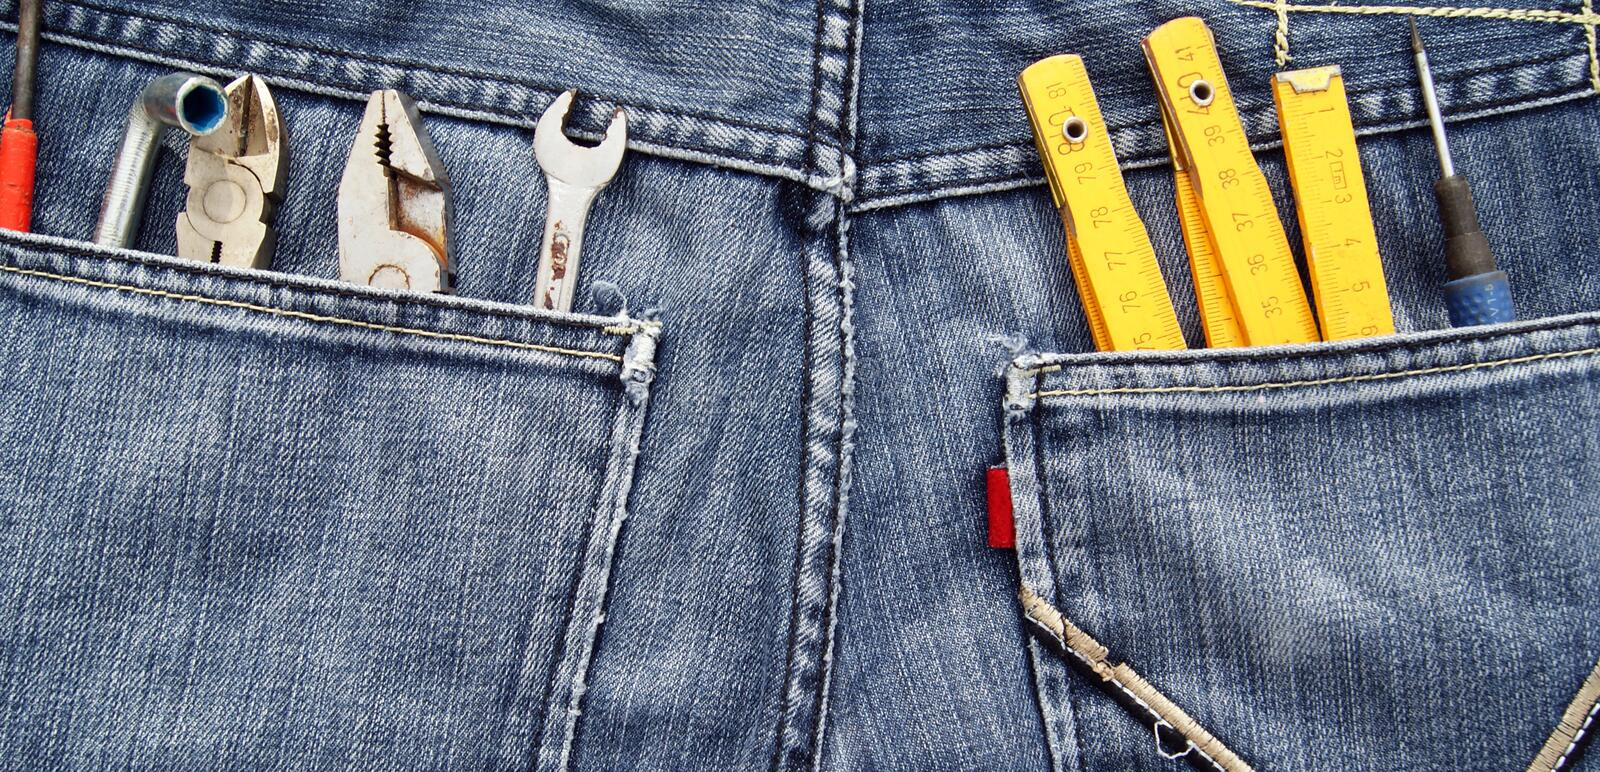 Download Tools and jeans pocket stock image. Image of modern, manual - 27530675